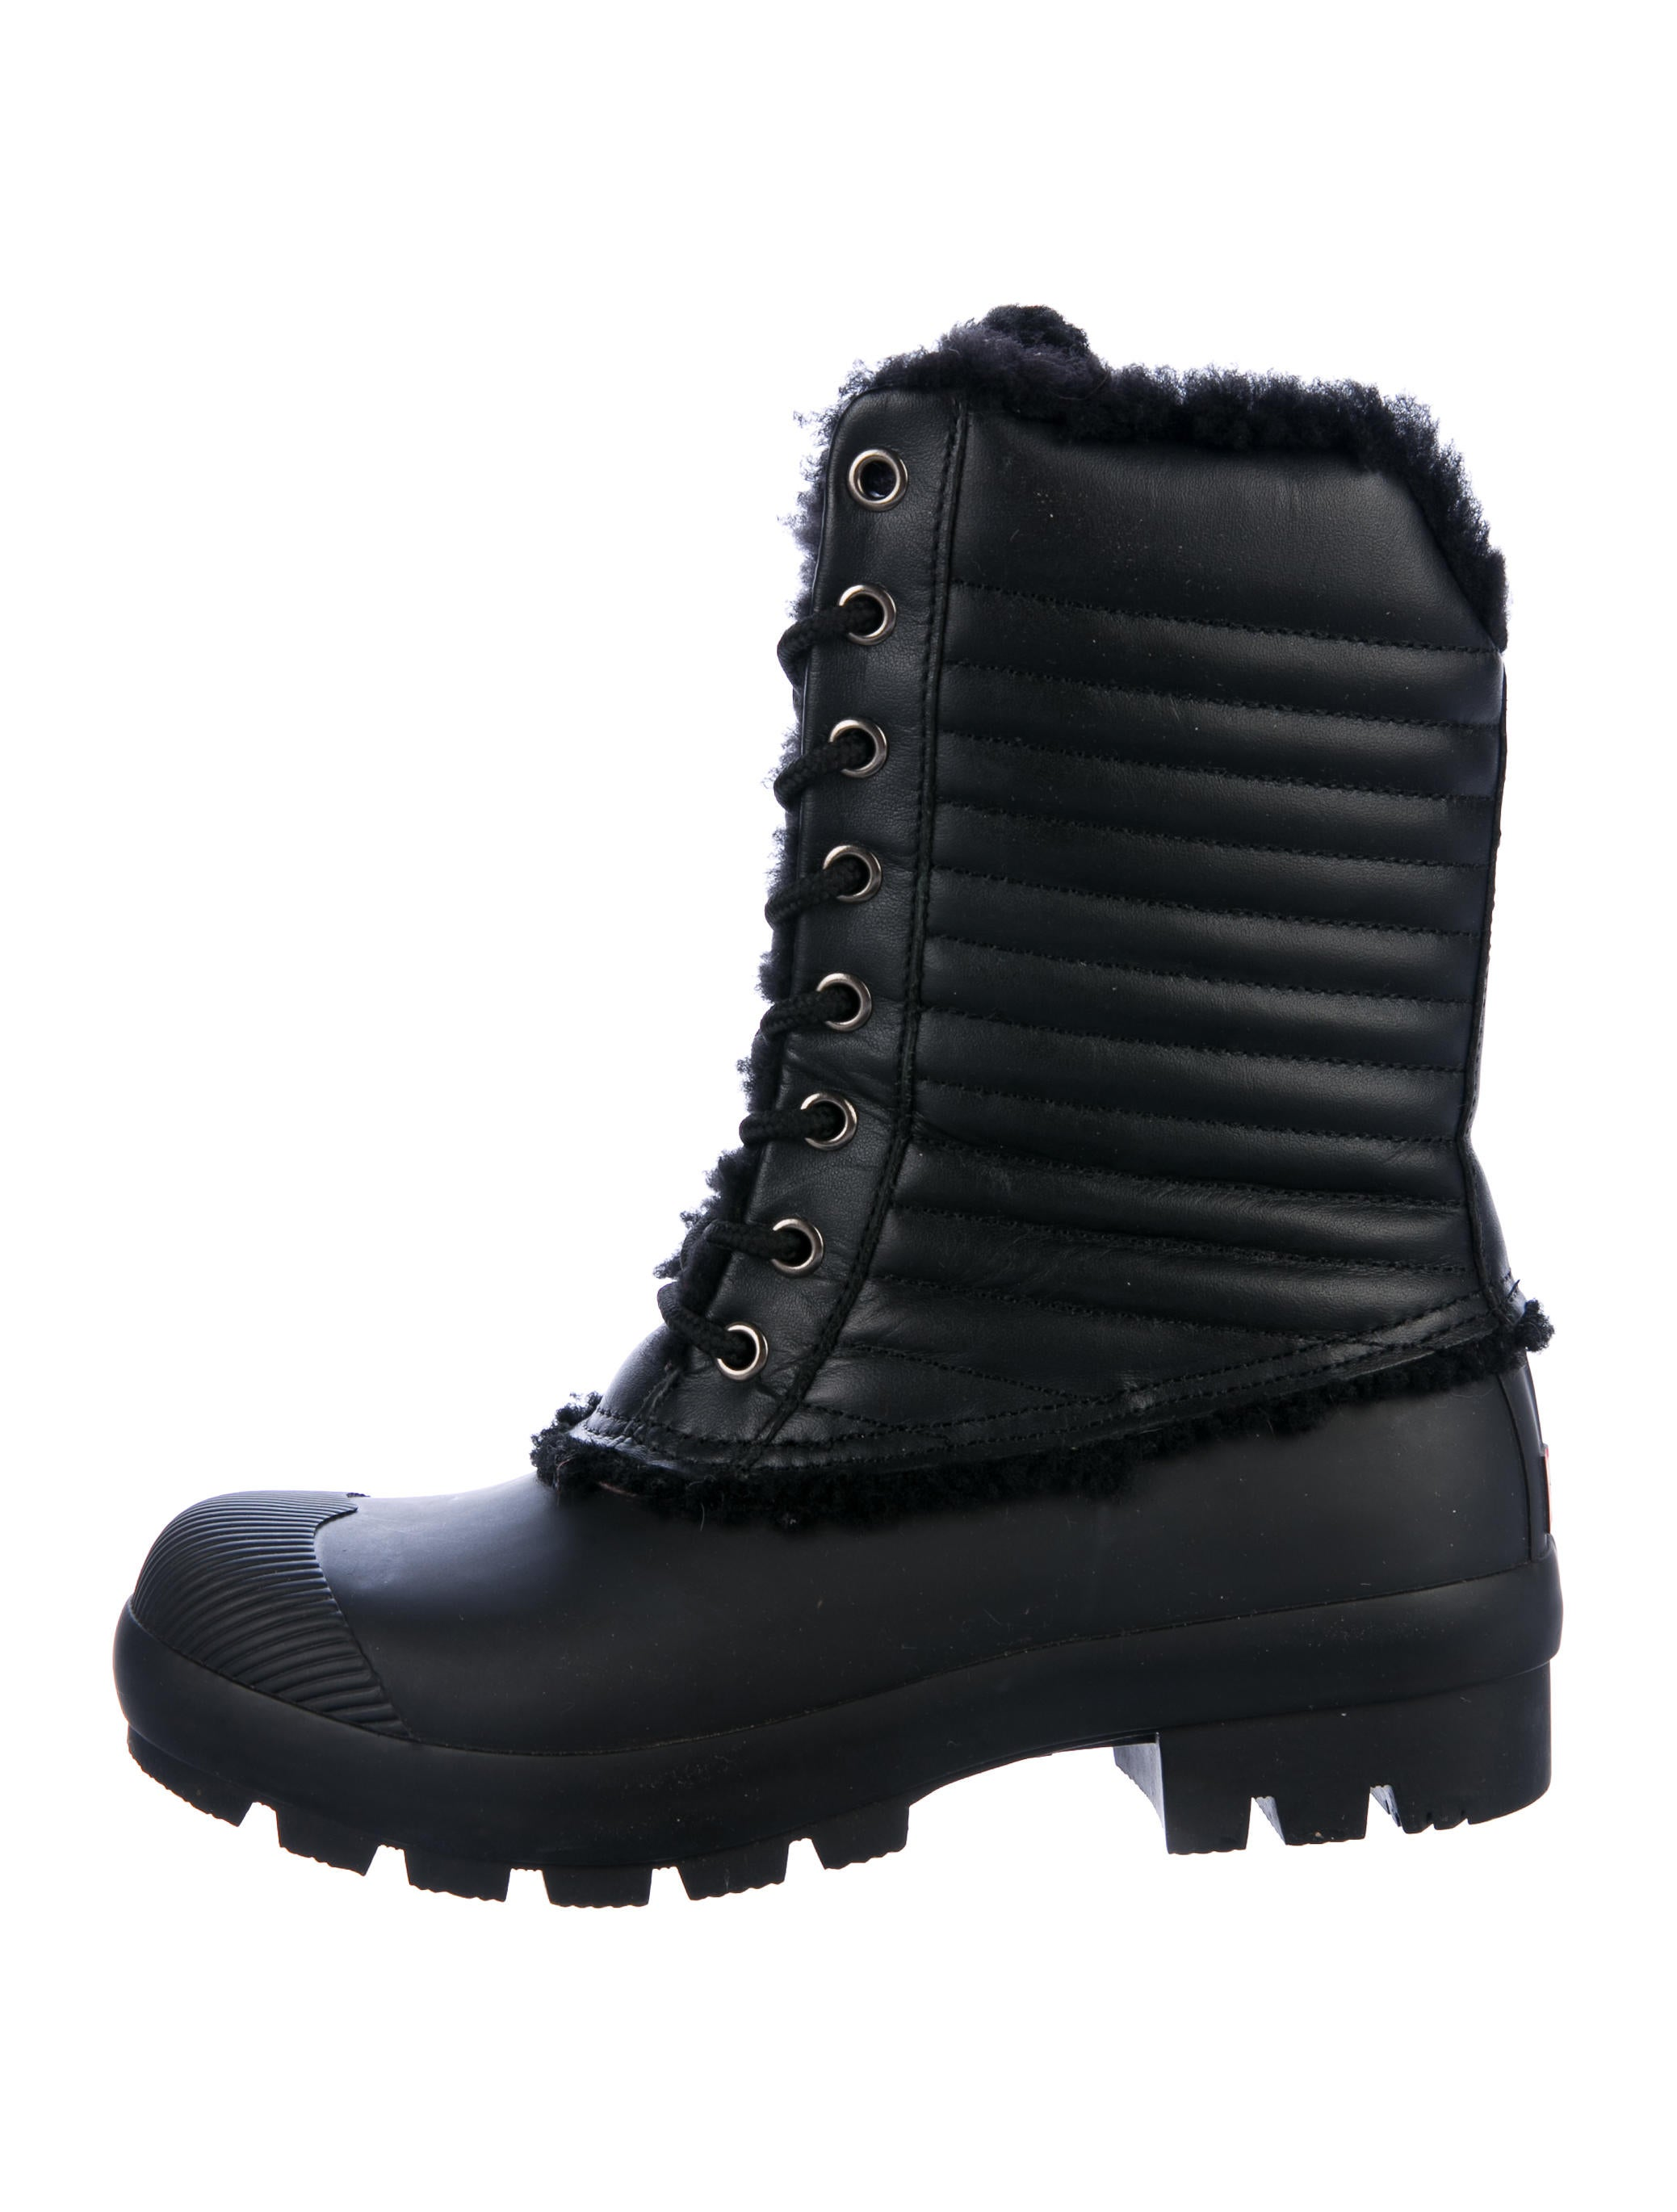 Hunter Leather-Trimmed Rain Boots fashionable buy cheap view cost looking for online pDVF5tk2Gv